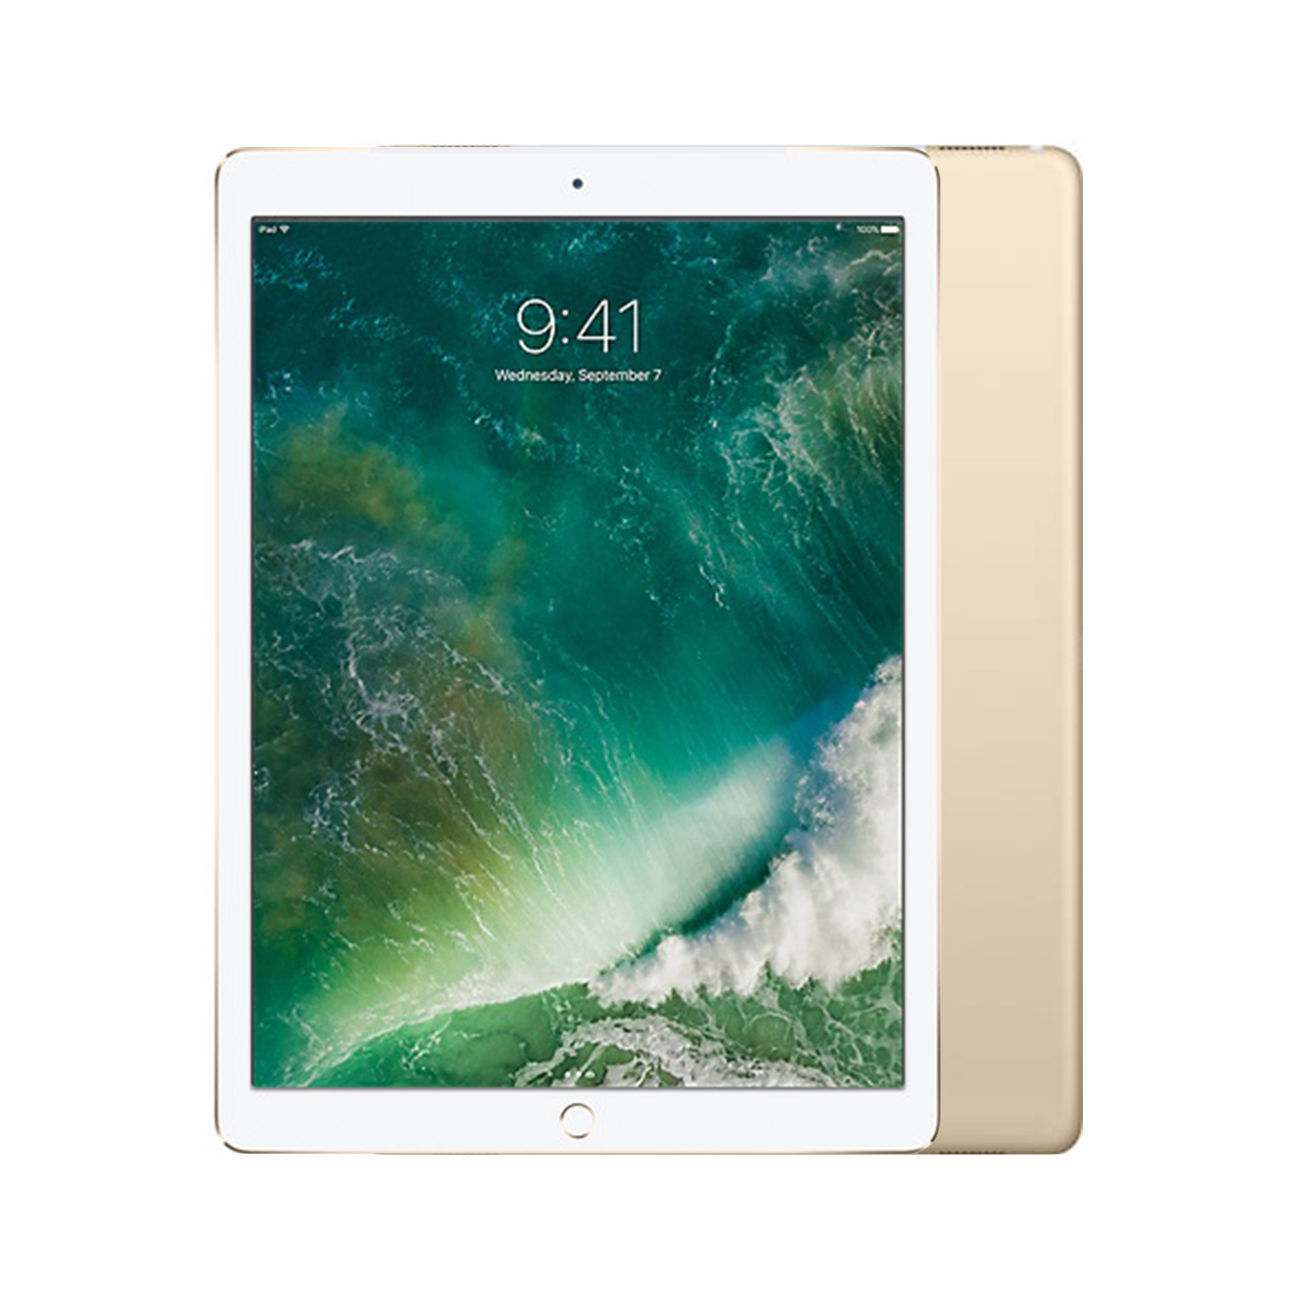 Apple iPad Pro 12.9 Wi-Fi + Cellular [128GB] [Silver] [Excellent] [12M]